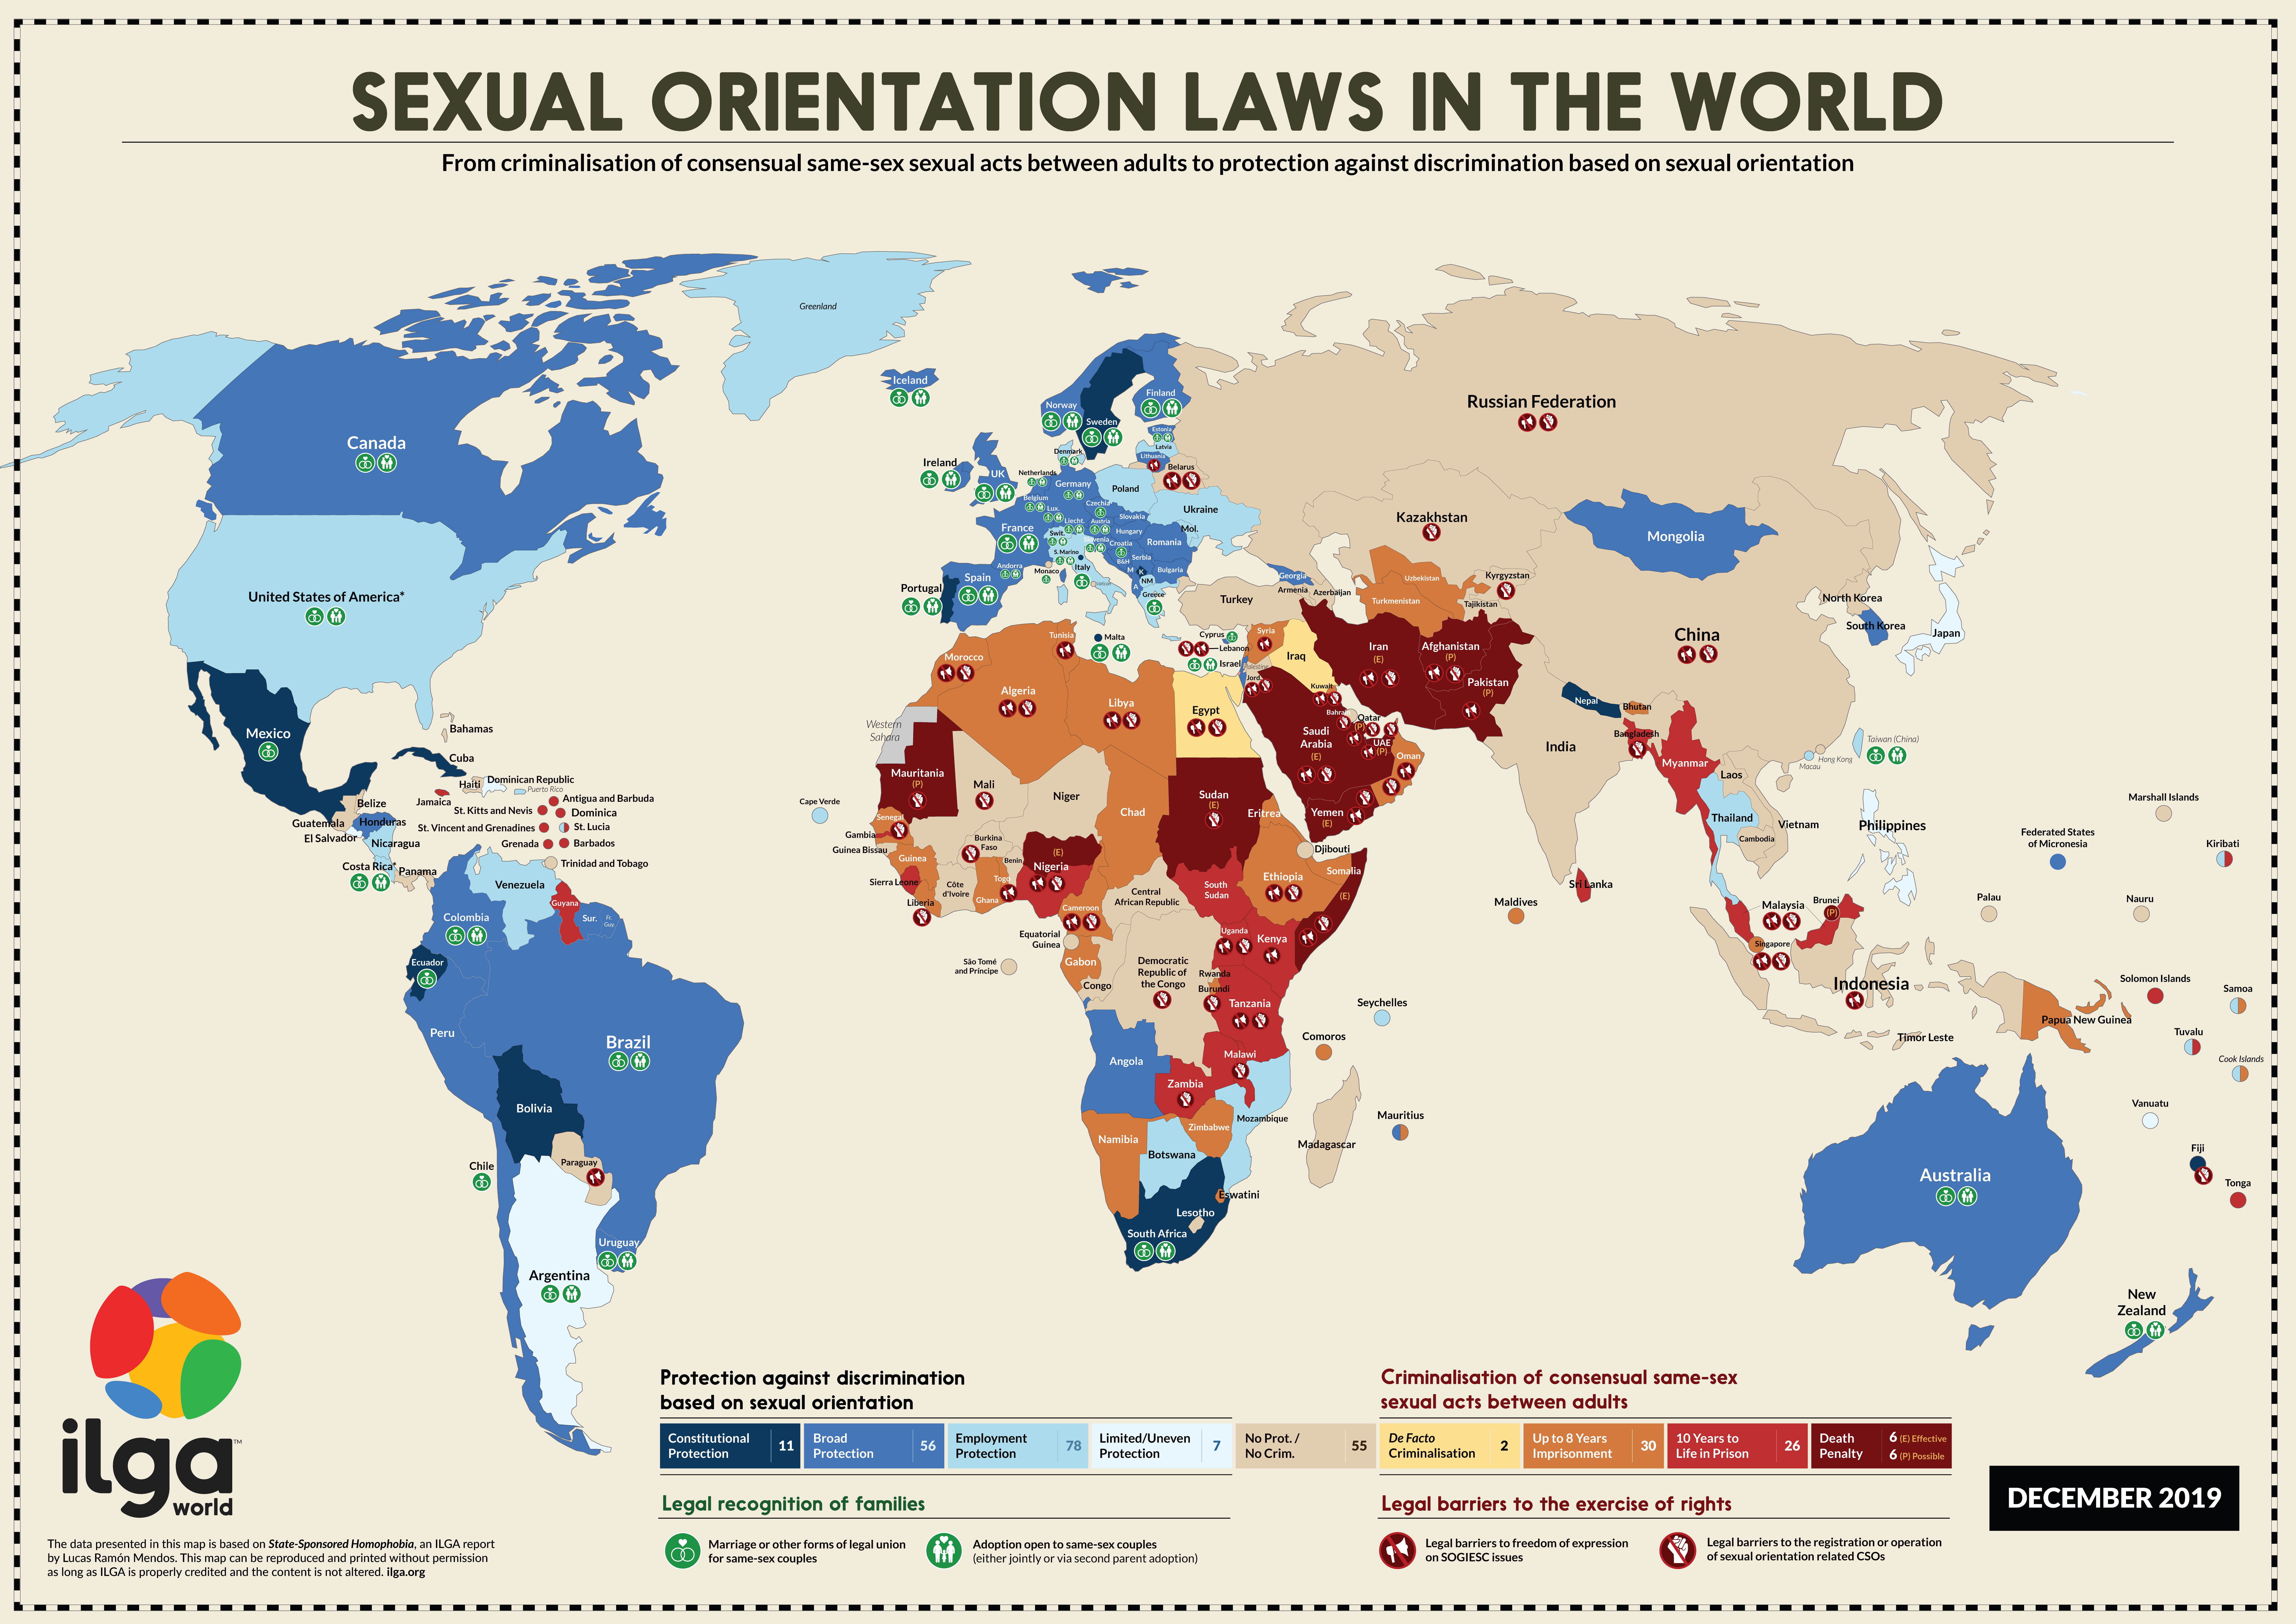 ILGA World's map showing Sexual Orientation Laws in the World